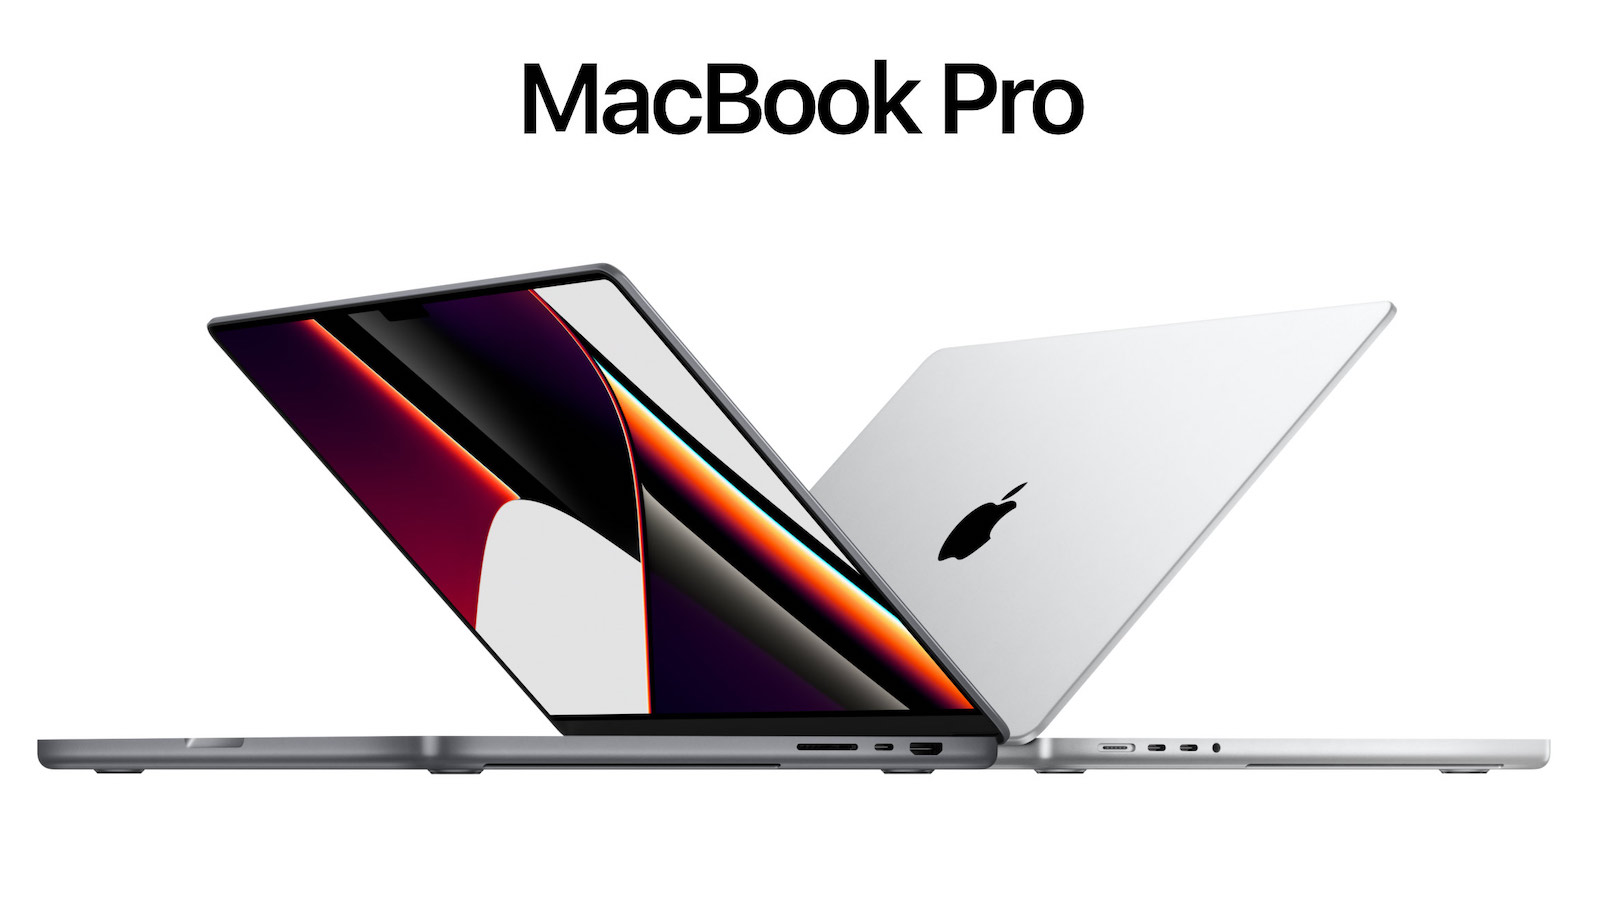 New MacBook Pro Tidbits: SD Card Speeds Limited to 250 MB/s, Peak Brightness for SD Content, eGPUs Still Not Supported, and More